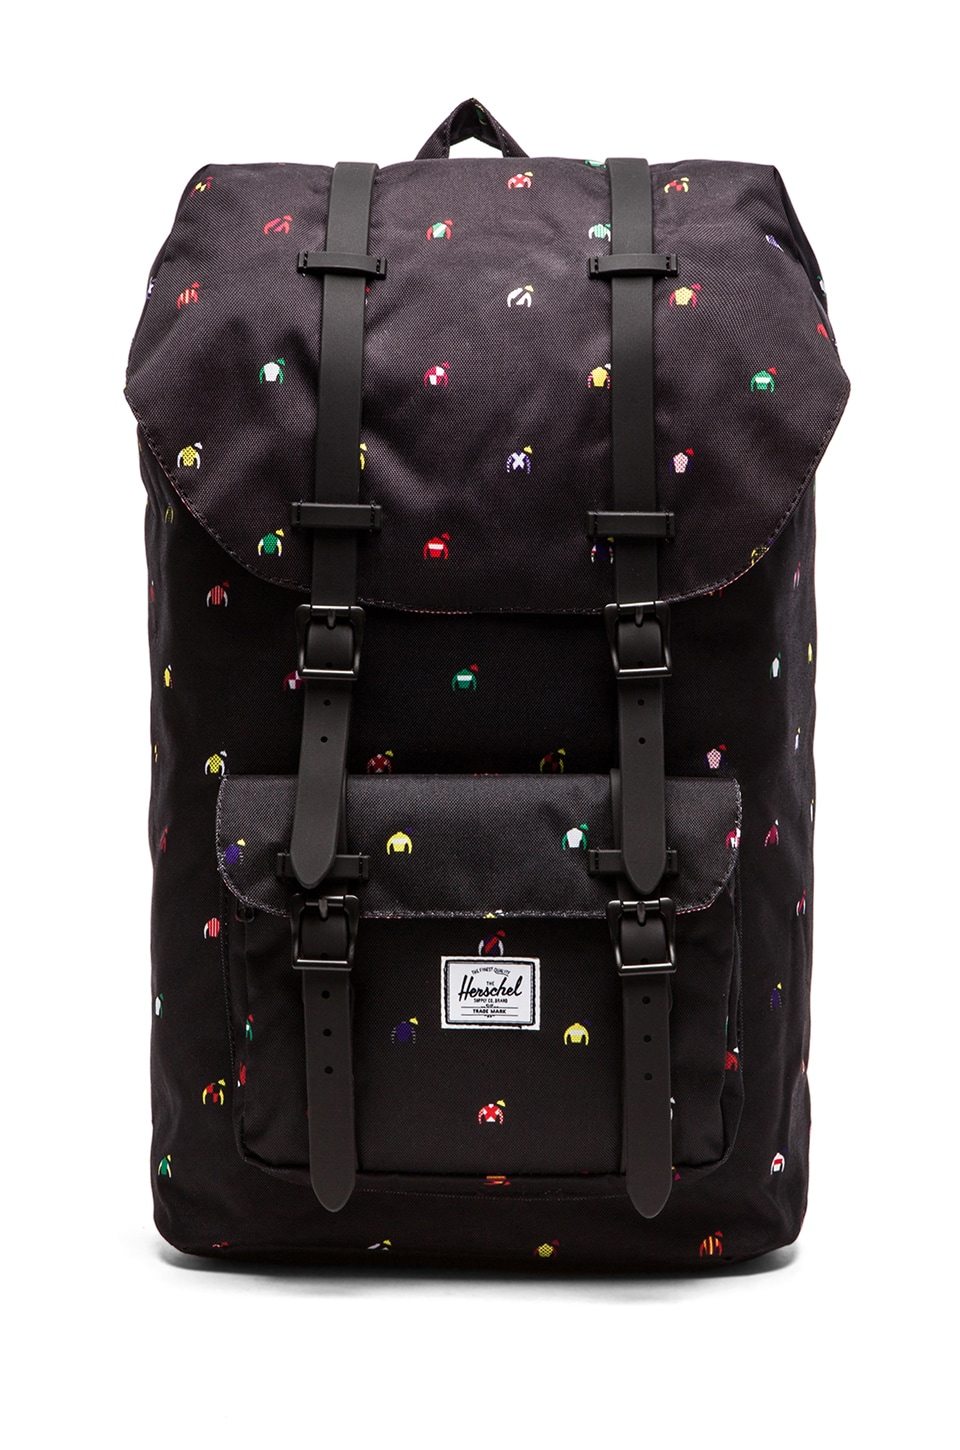 Herschel Supply Co. Limited Release Little America Backpack in Jockey Jersey